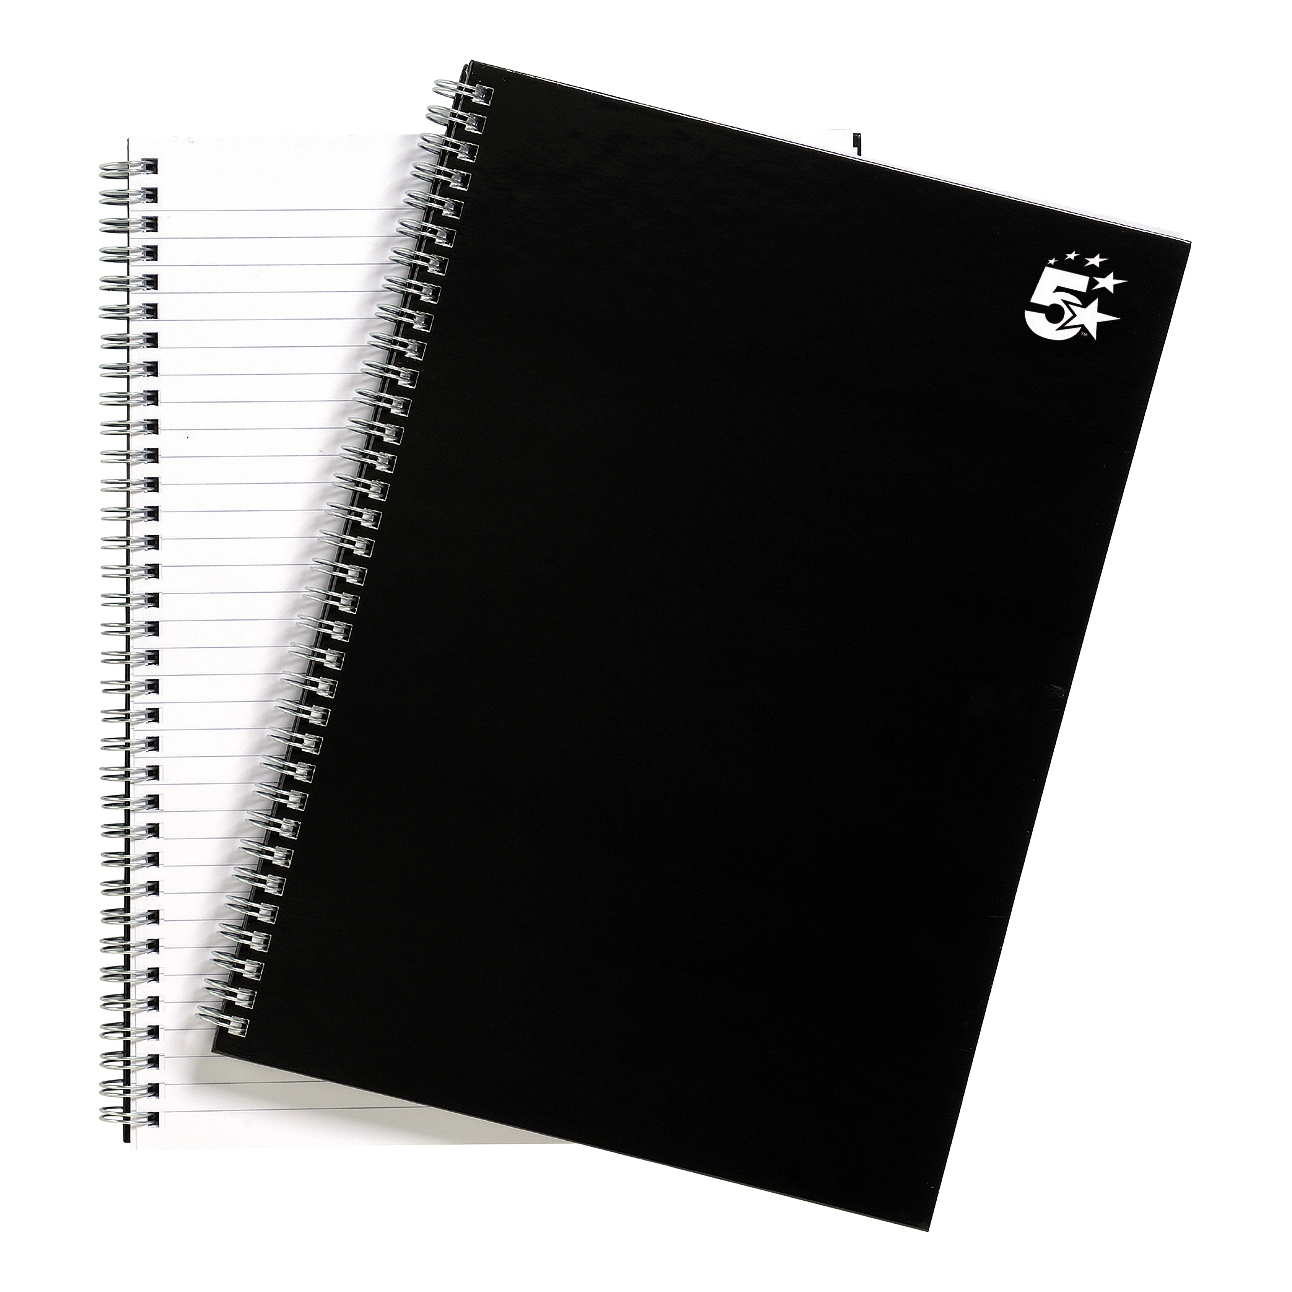 Image for 5 Star Office Notebook Wirebound 80gsm Ruled 140pp A4 Black [Pack 5]